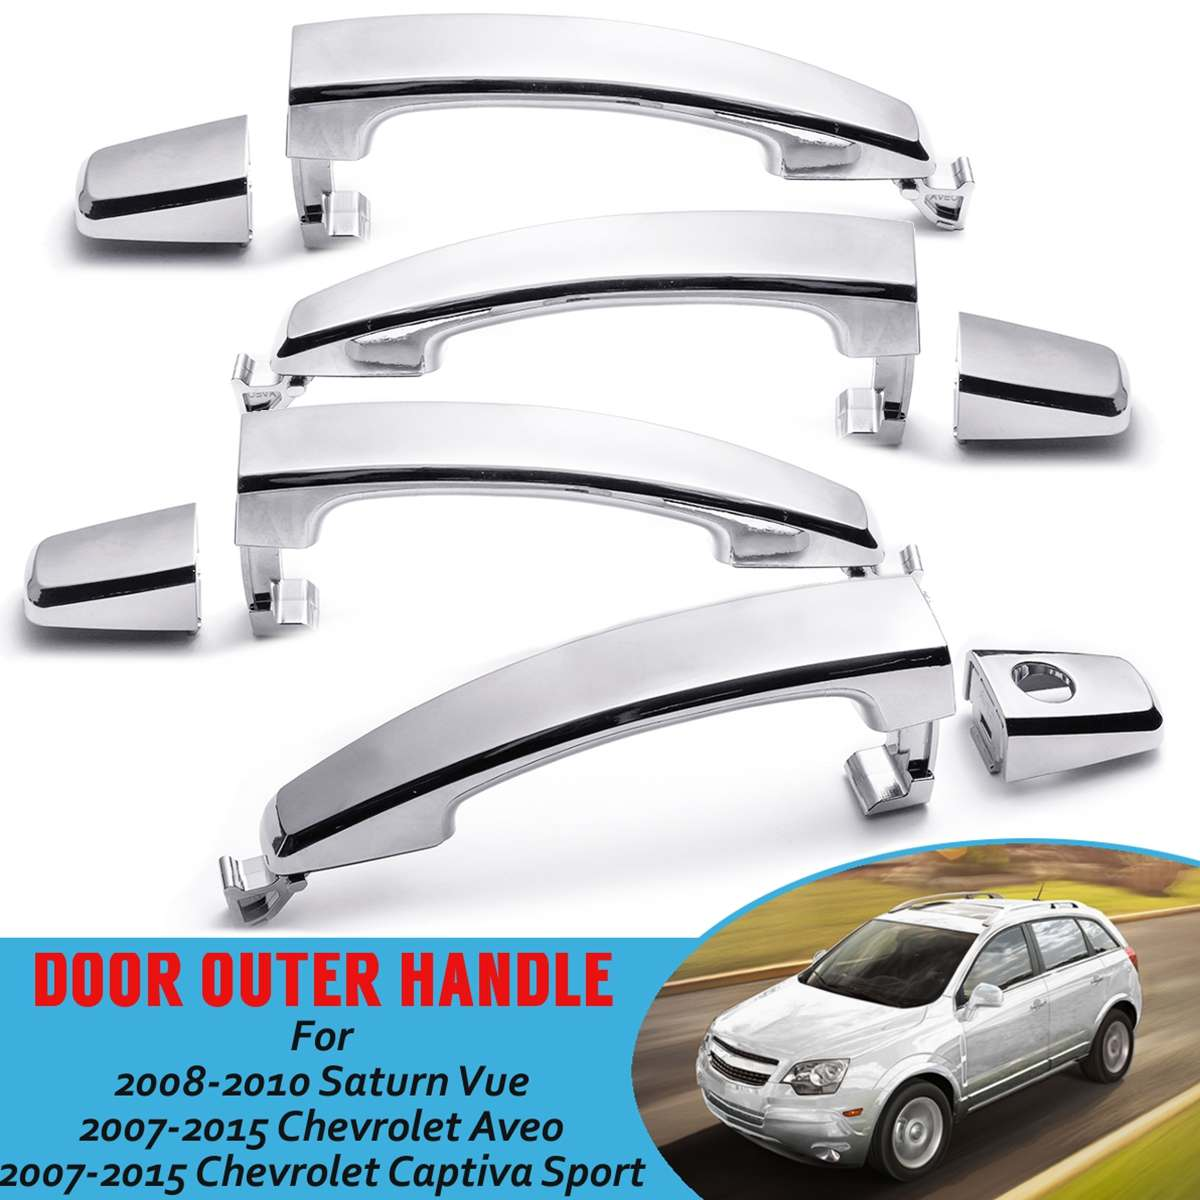 Sizver Chrome Door handle cover For 2013-2014 Chevy Malibu No passenger side keyhole